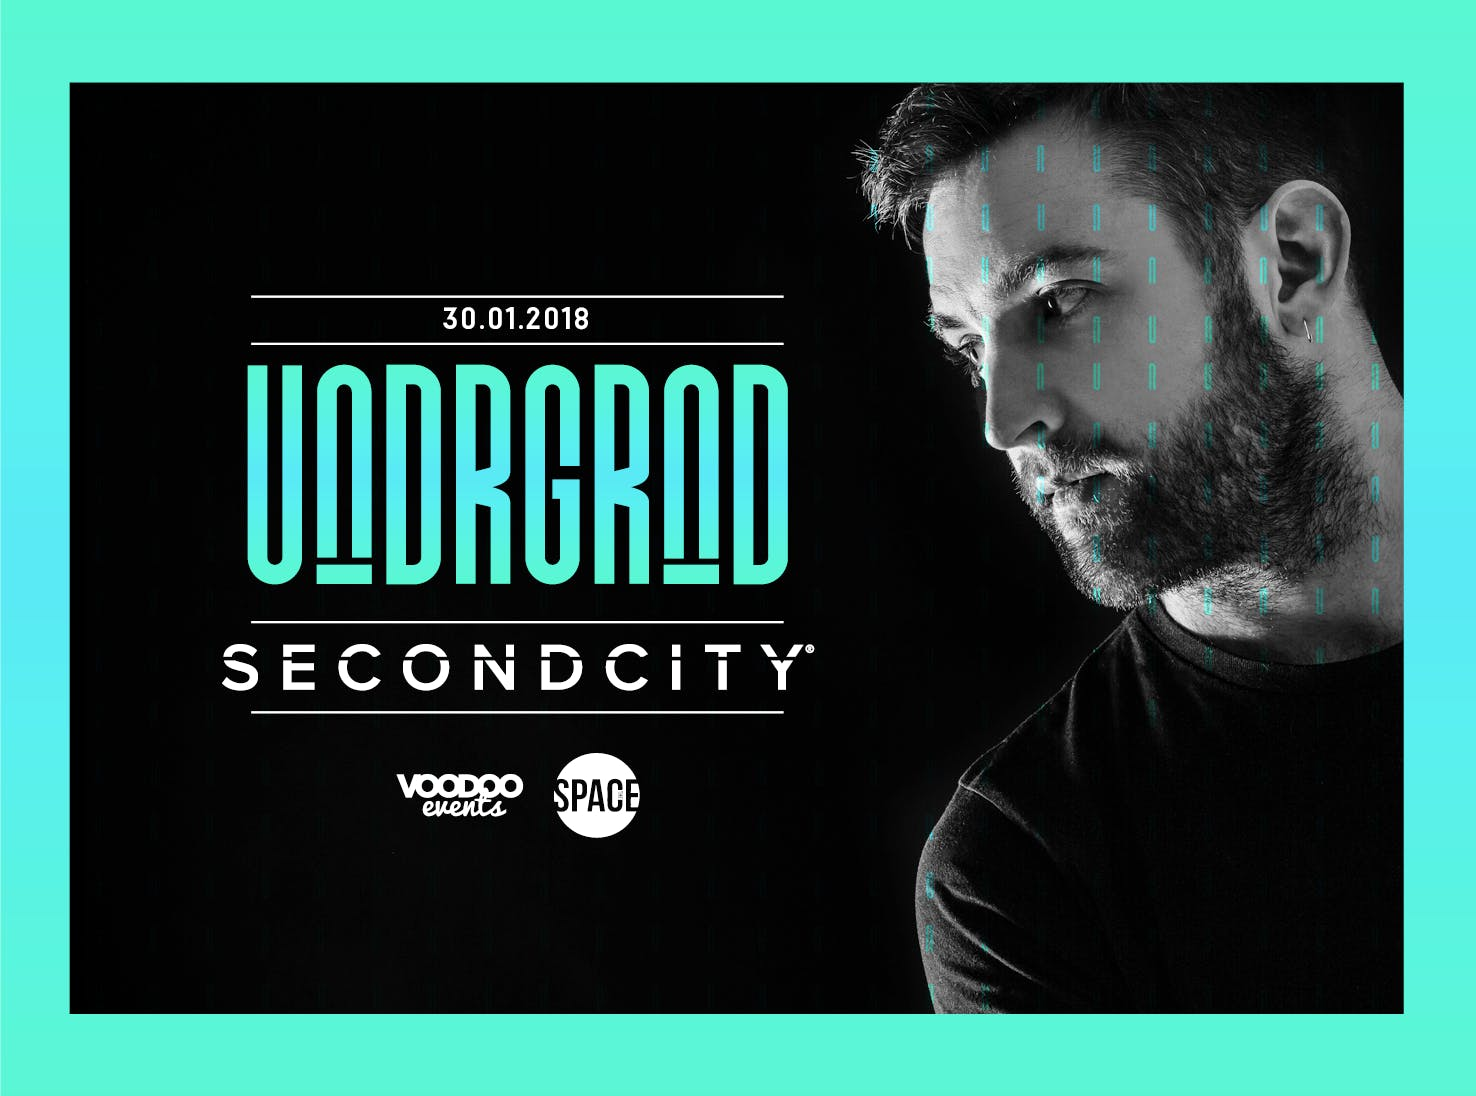 UNDERGROUND presents Secondcity